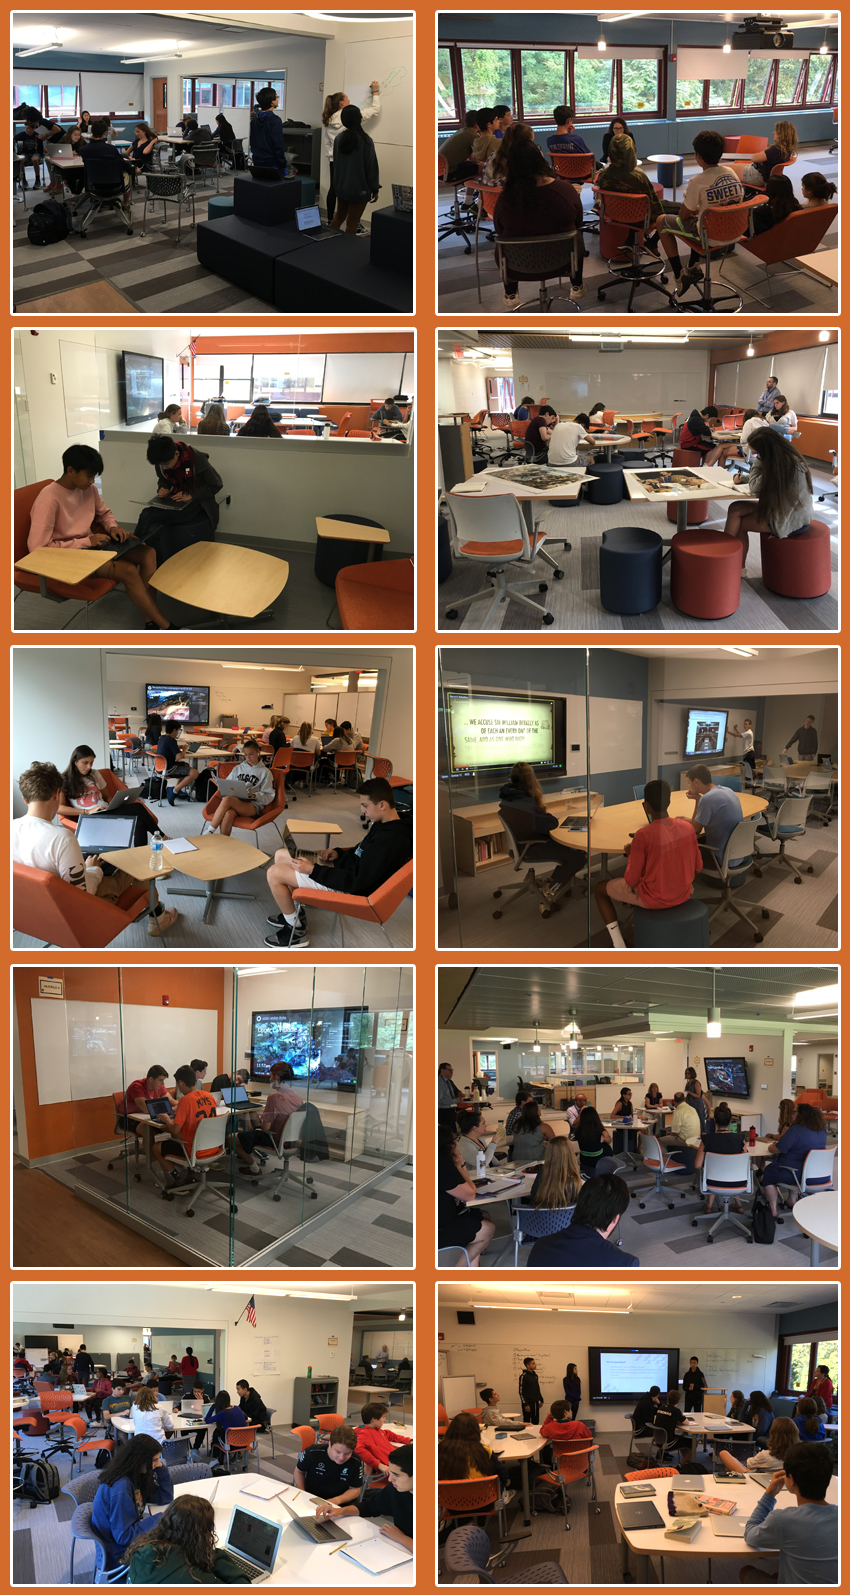 Picture collage from upper L Building.